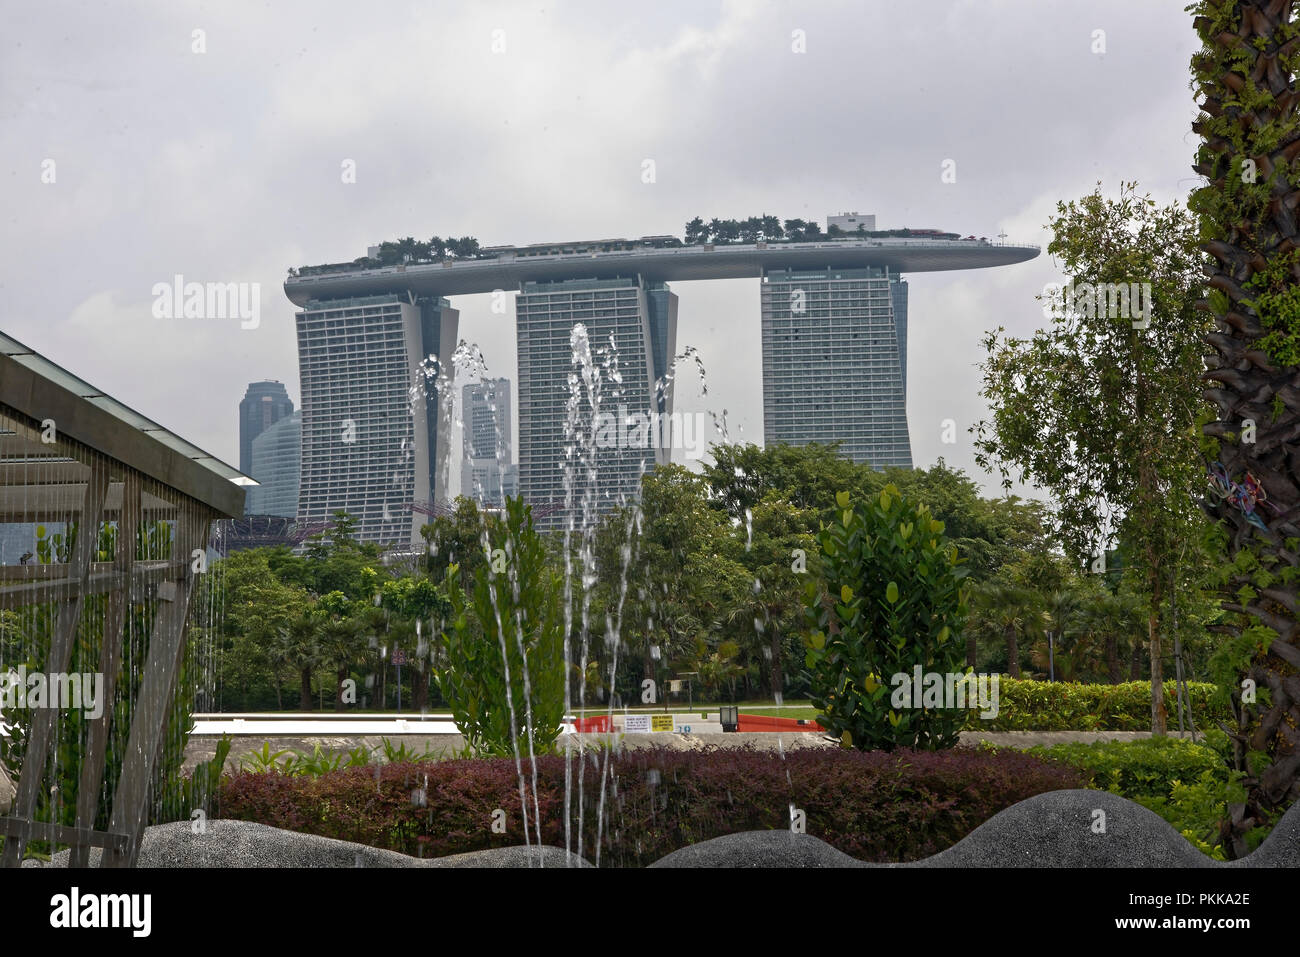 Singapore, Singapore- August 07, 2018: View of the fountain in Marina Barrage Stock Photo